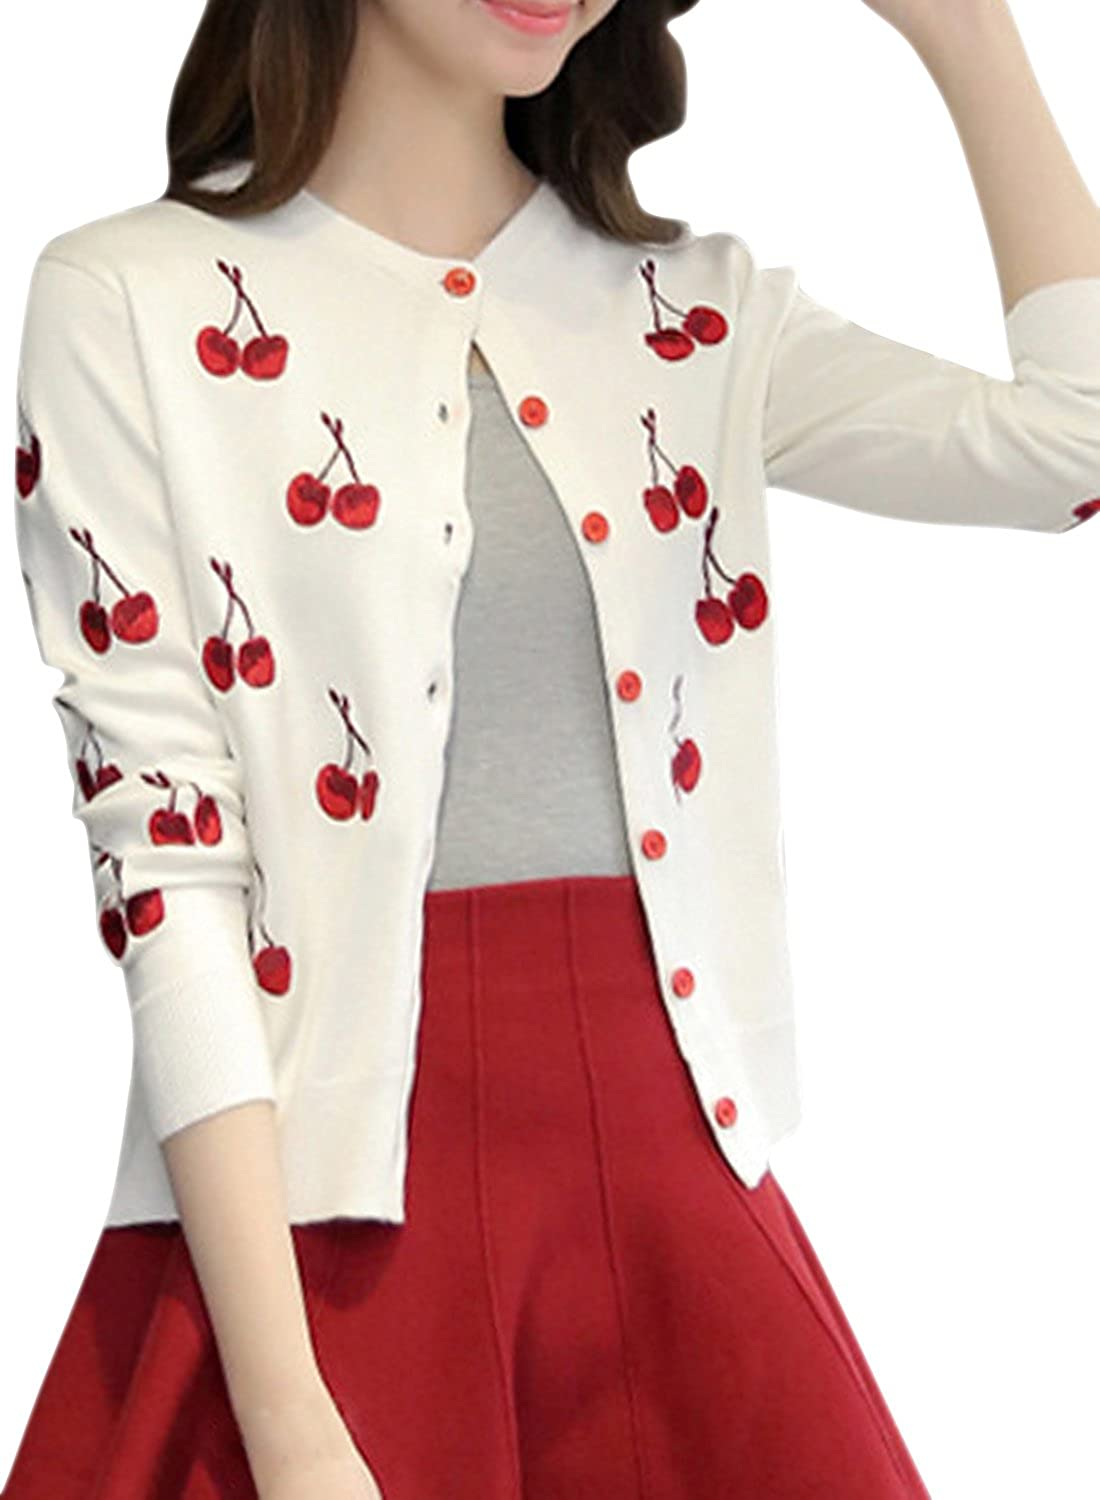 ACHICGIRL Women's Cherry Graphic Button Down Knit Cardigan